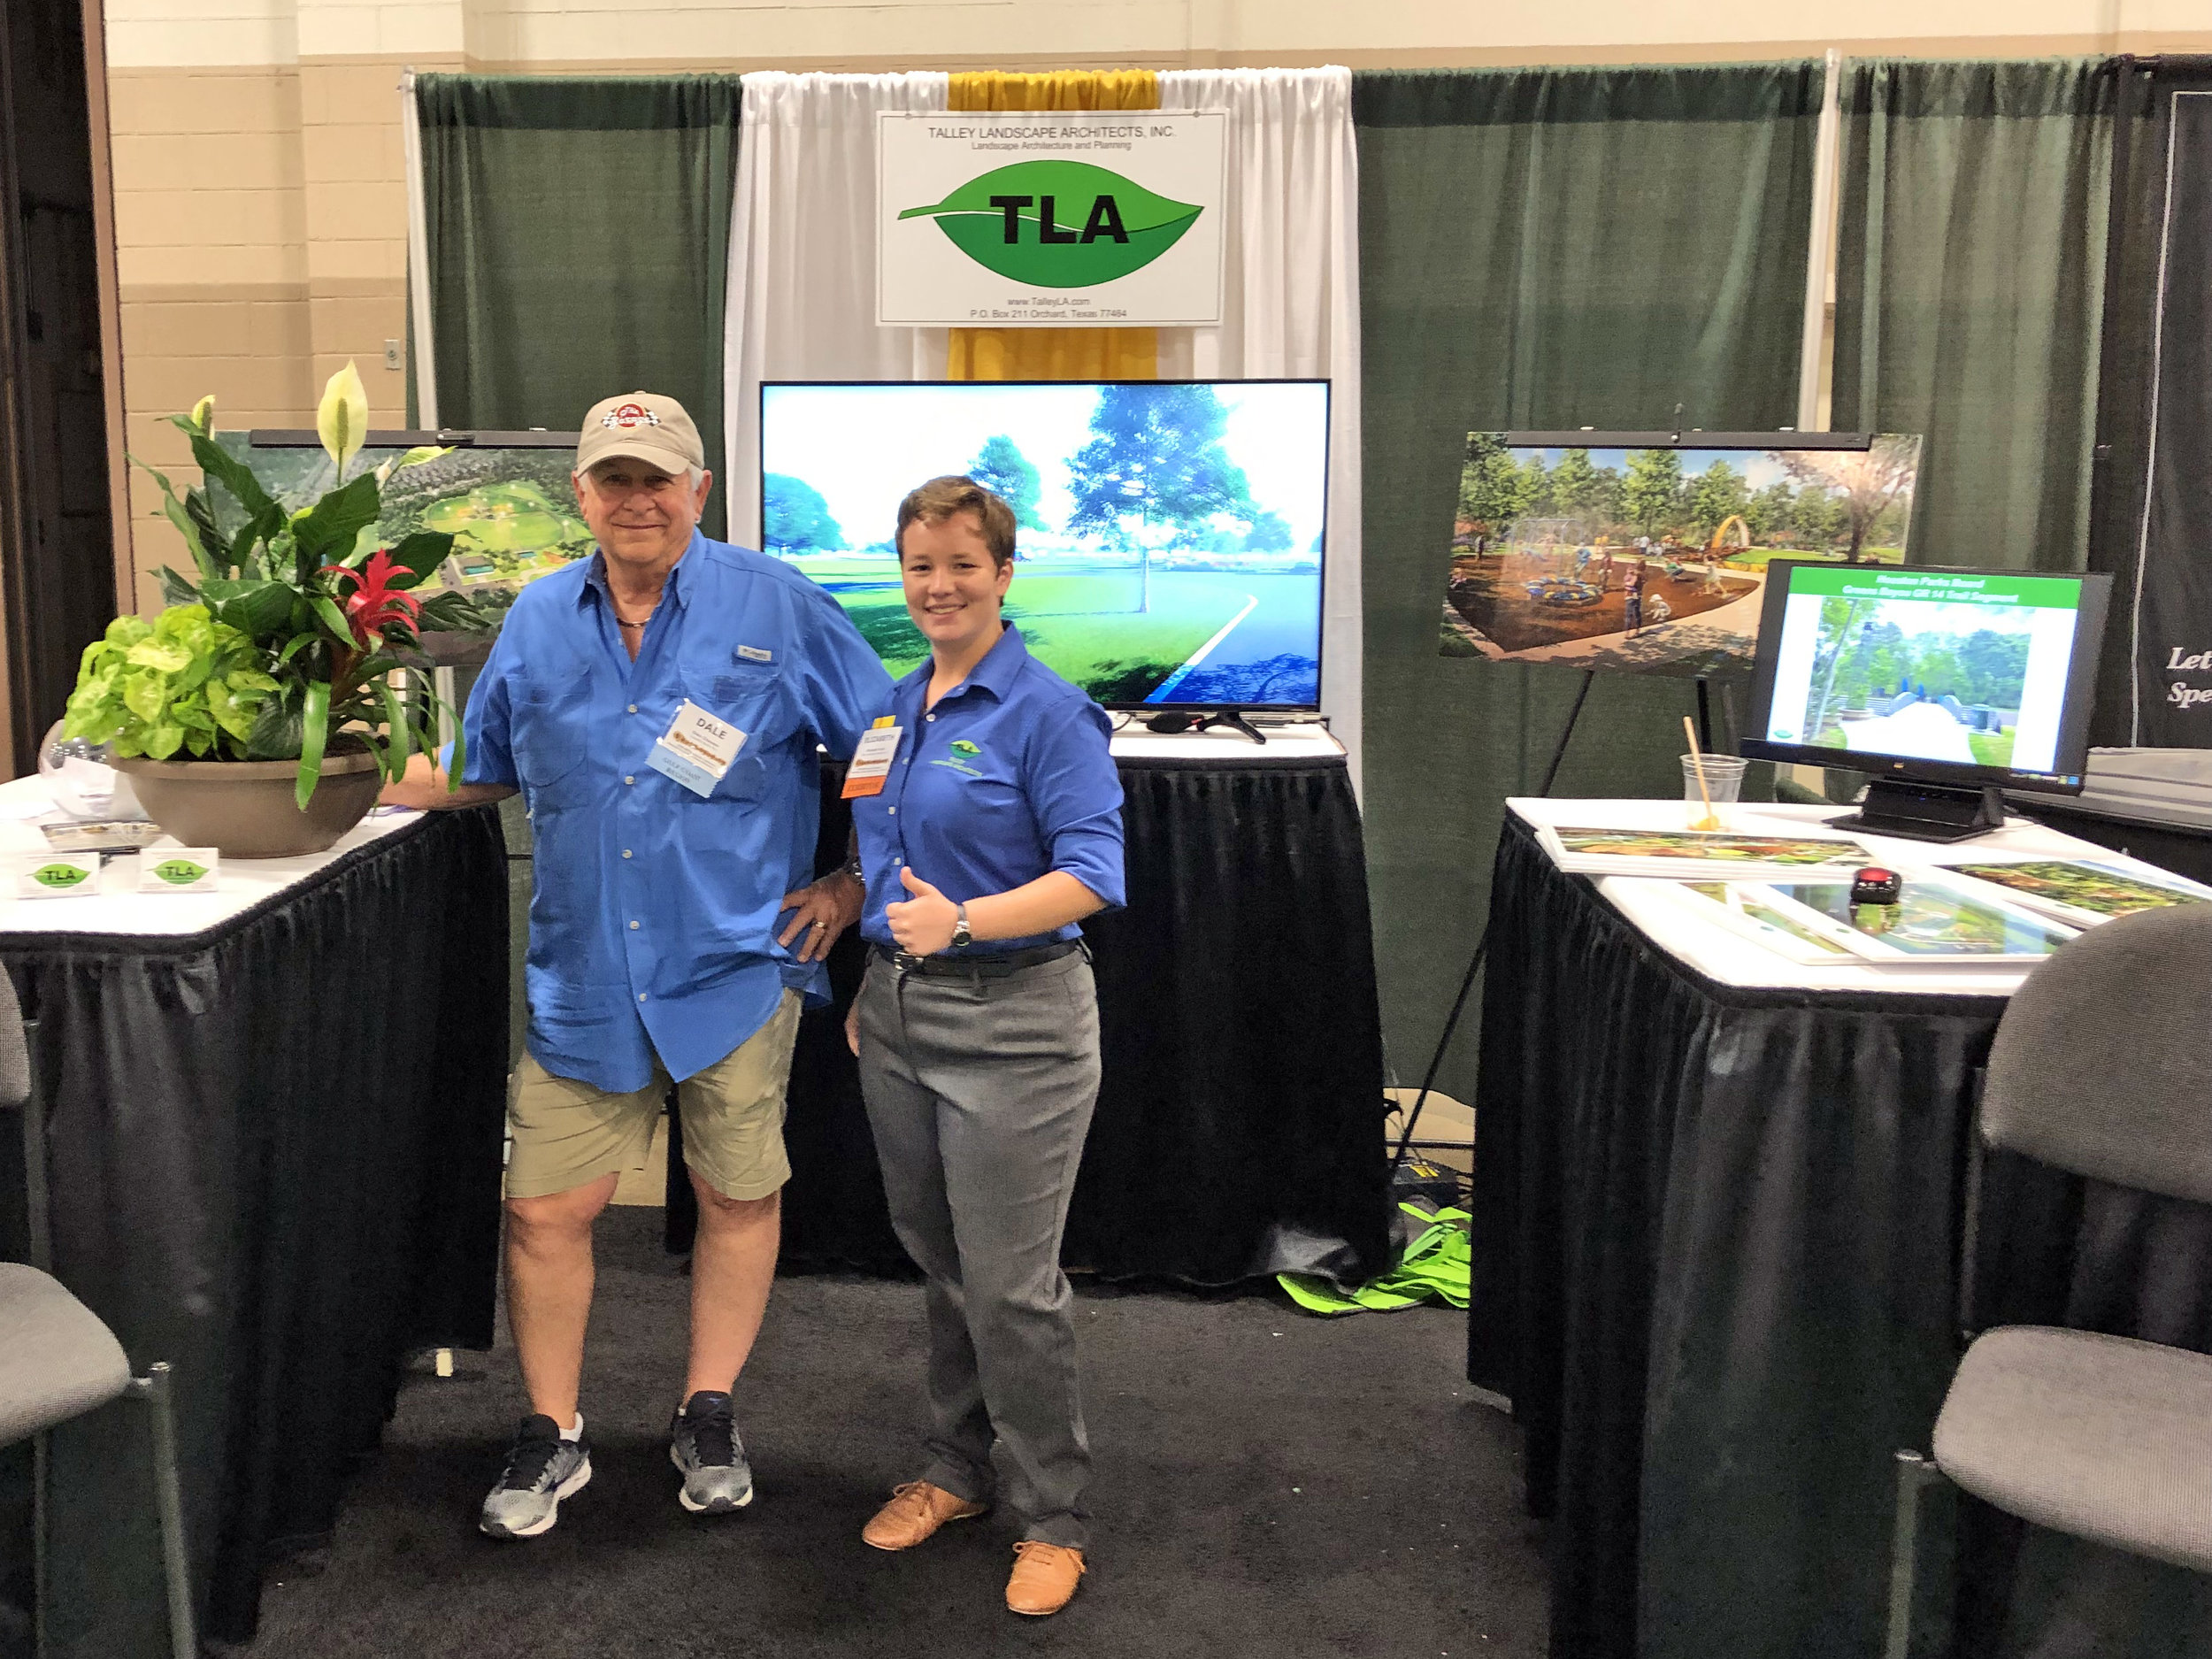 - Talley Landscape Architects, Inc. had a successful 2019 Association of Water Board Directors Conference in Fort Worth, Texas. We were glad to see many familiar faces and several lucky winners went home with beautiful floral arrangements.